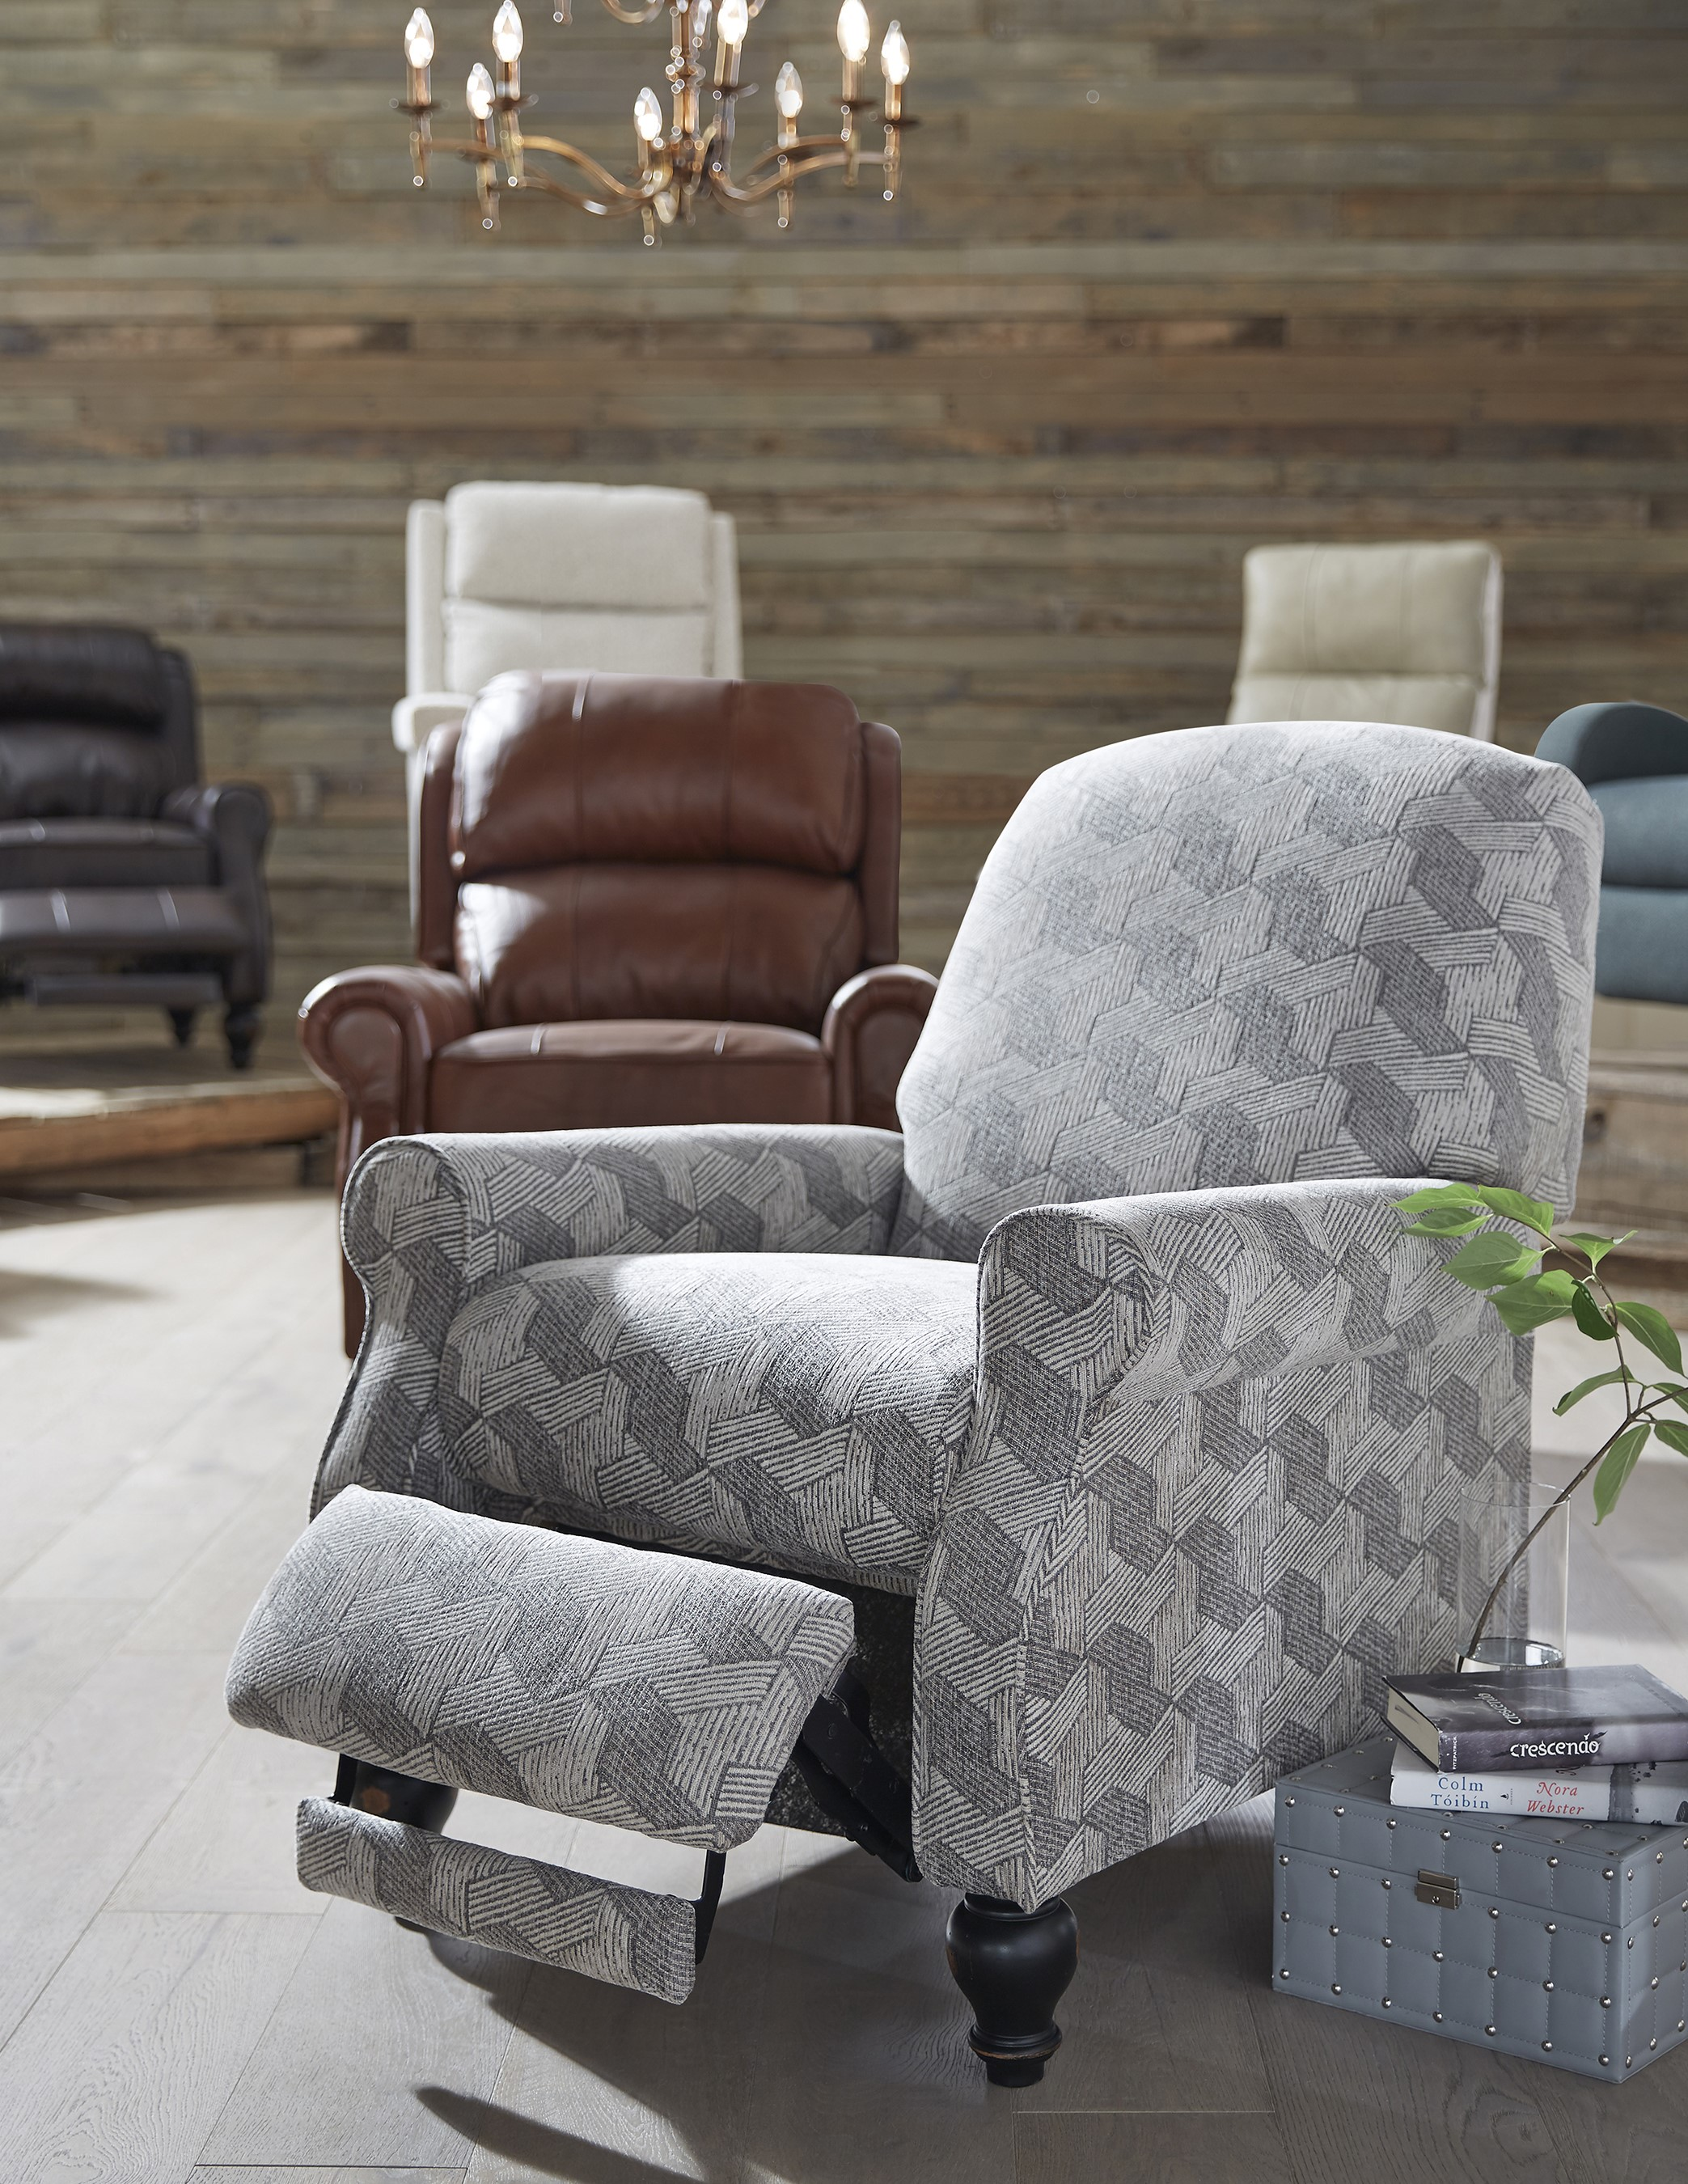 stylish recliners make for great Living Room Furniture in Chattanooga TN